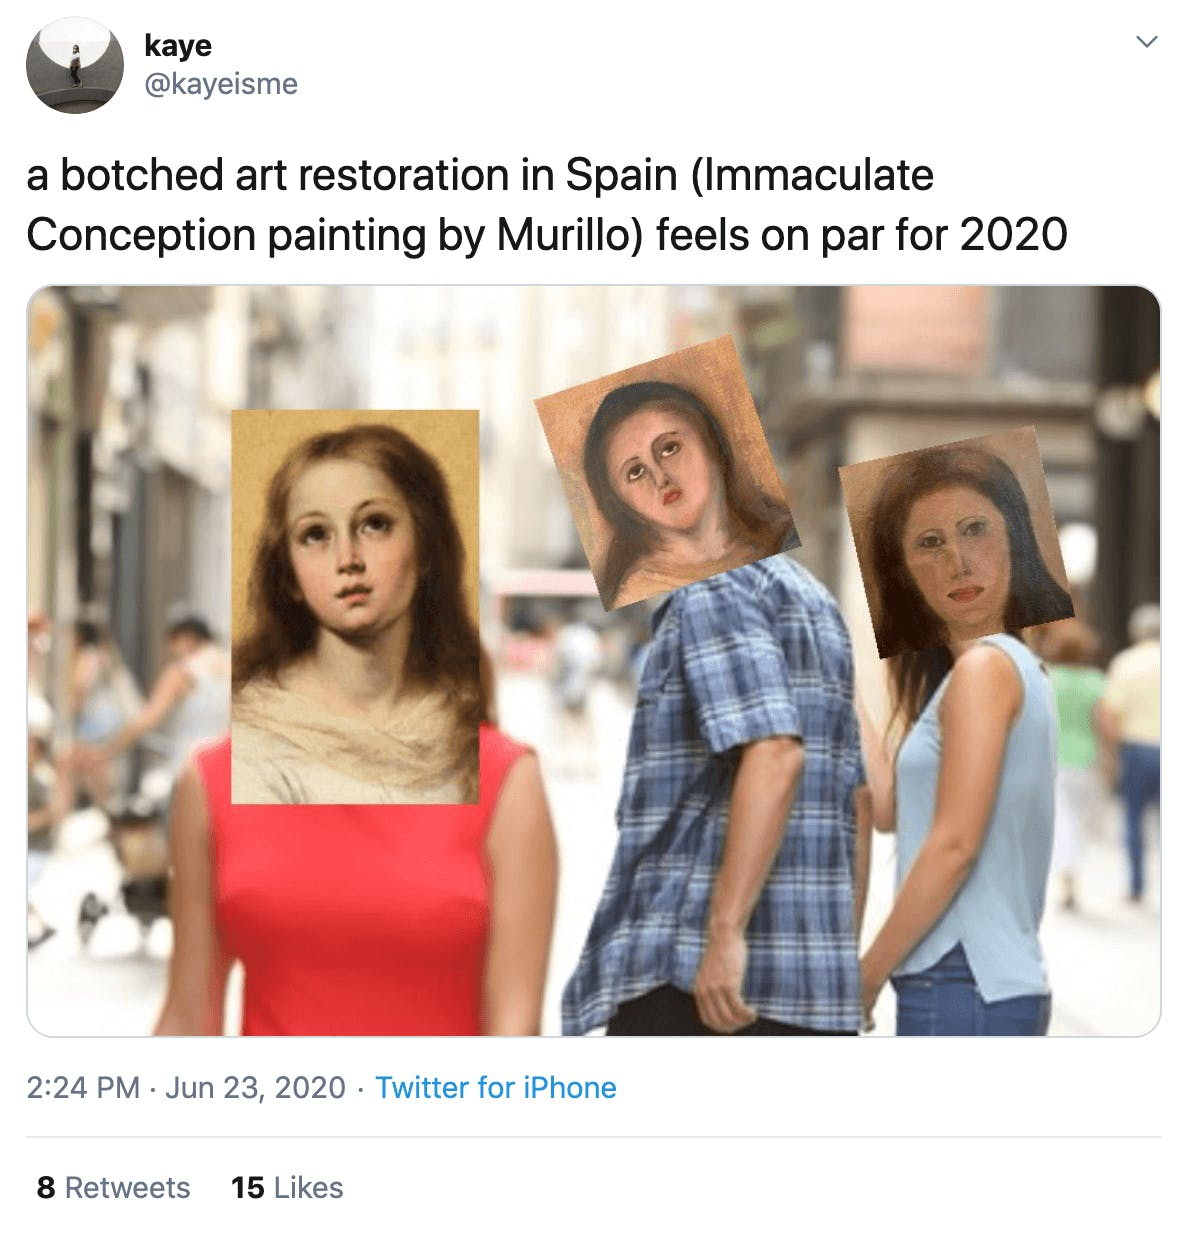 """a botched art restoration in Spain (Immaculate Conception painting by Murillo) feels on par for 2020"" men of man hjolding girlfriend's hand while looking at another woman with the three versions of Mary's face on theirs"